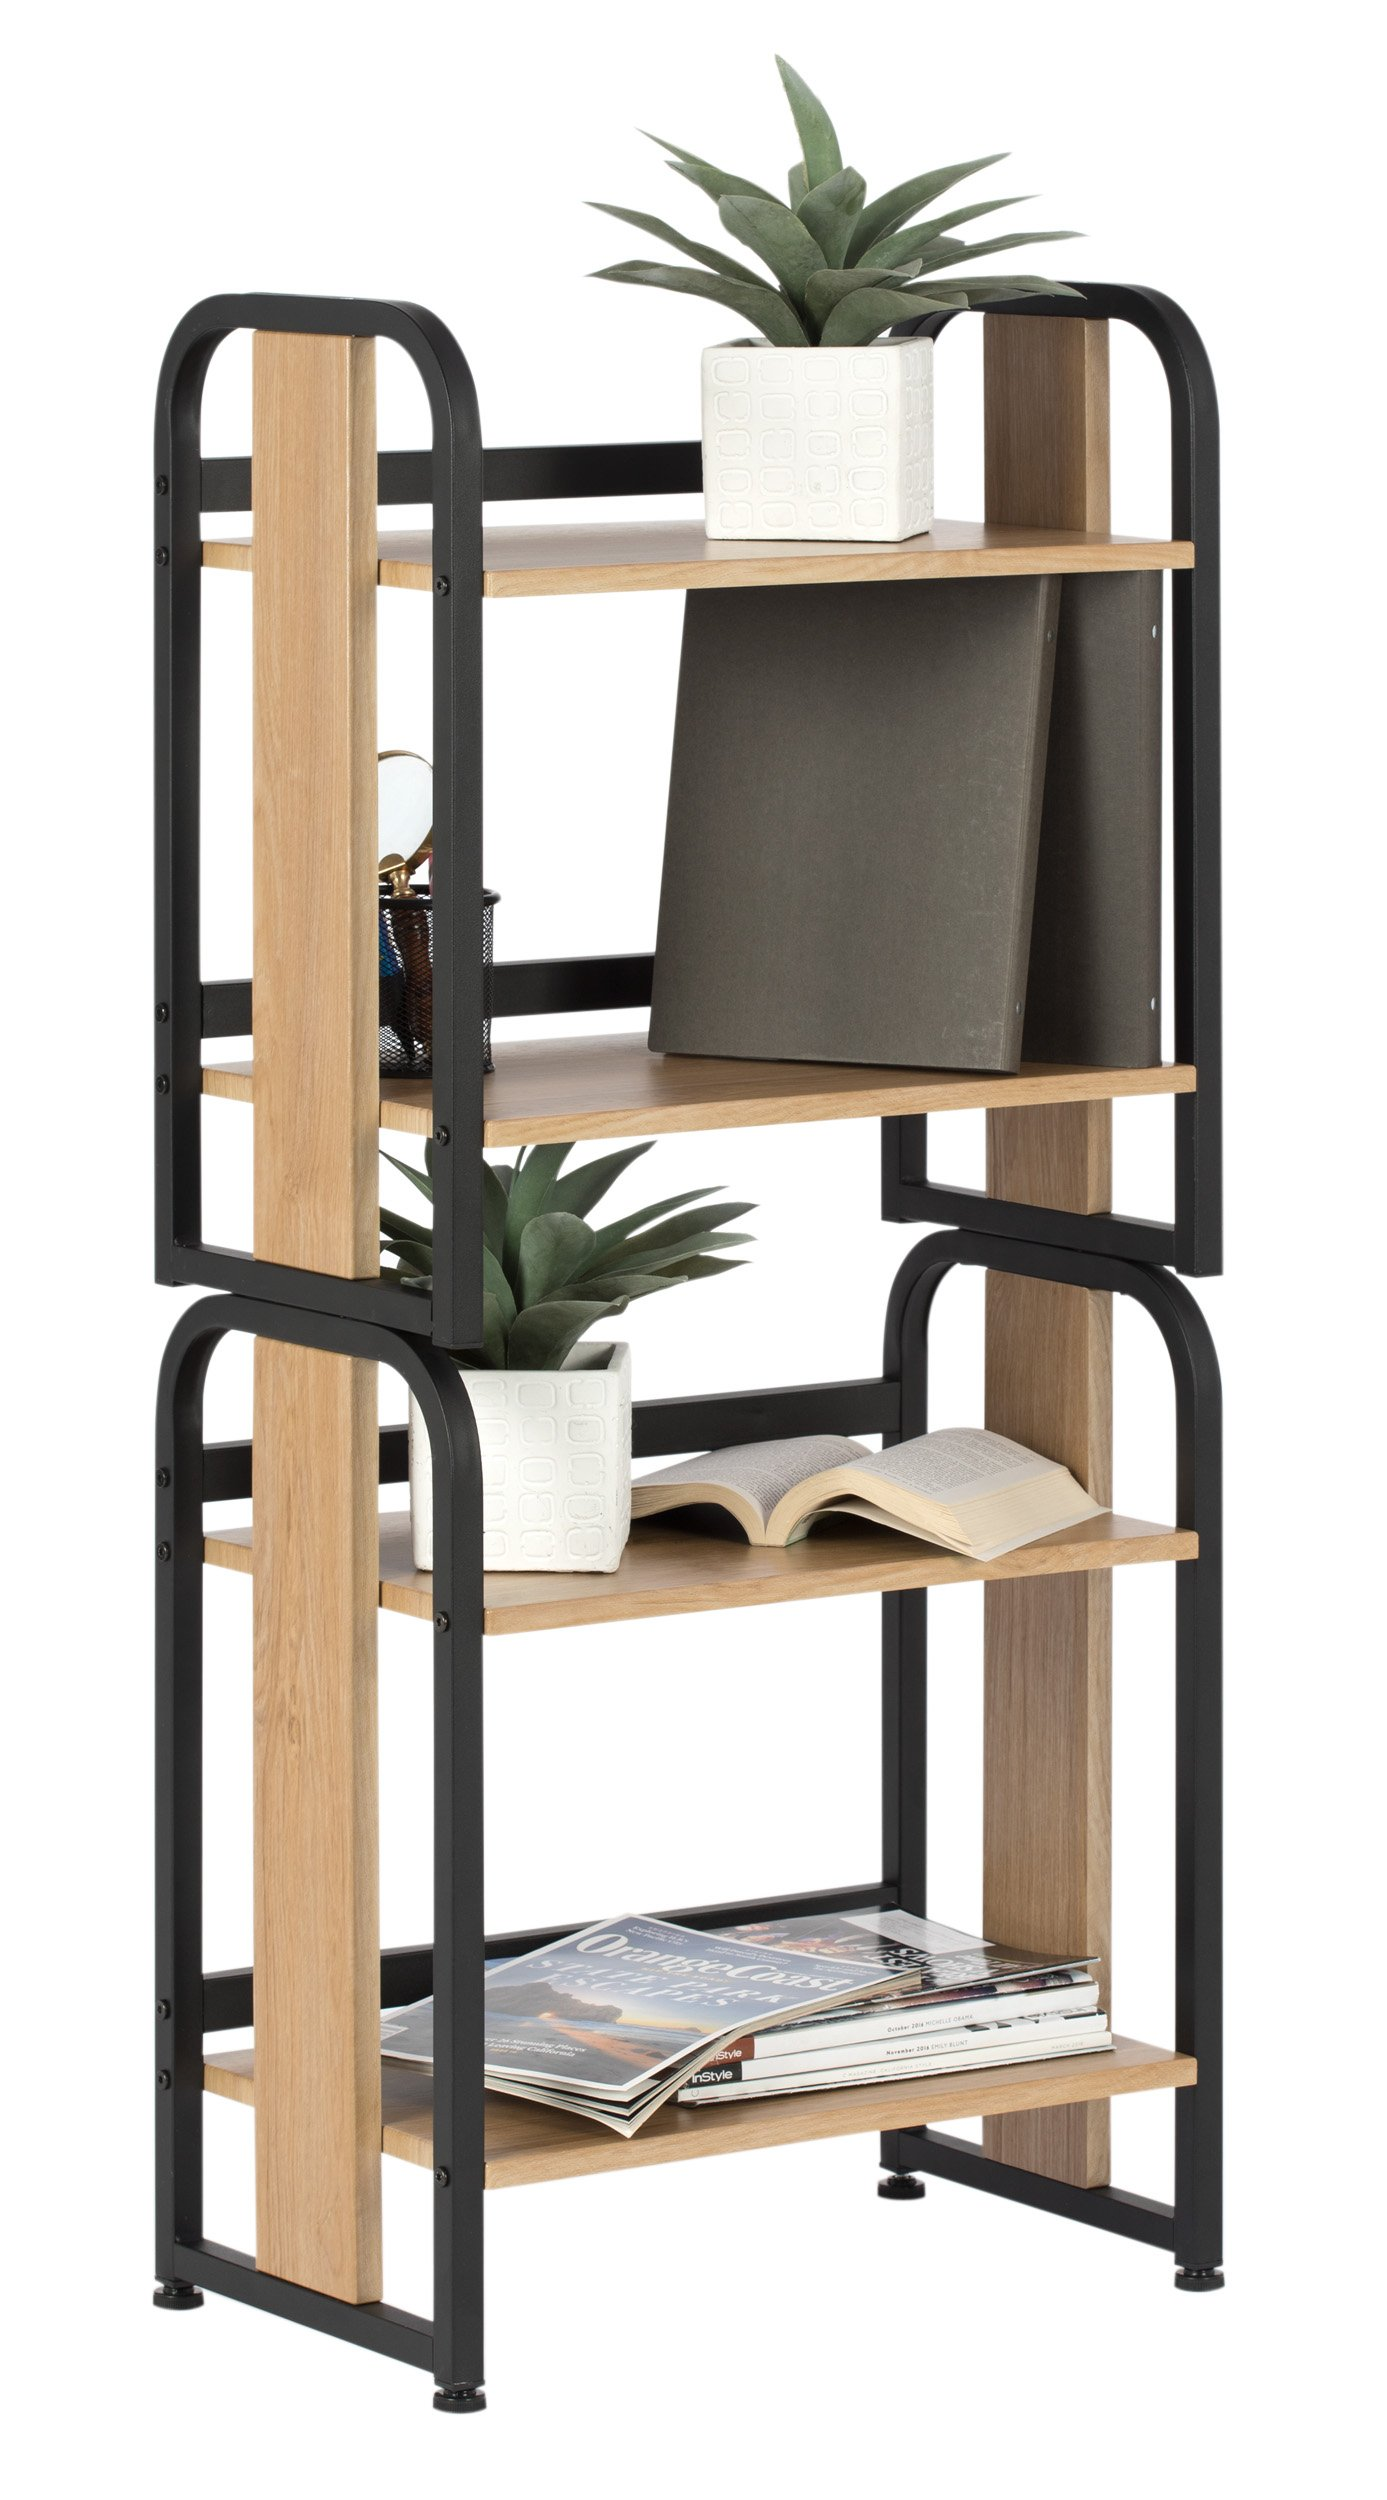 Calico Designs 51249 Modern Ashwood Stackable Bookshelf, Graphite Ashwood by Calico Designs (Image #5)